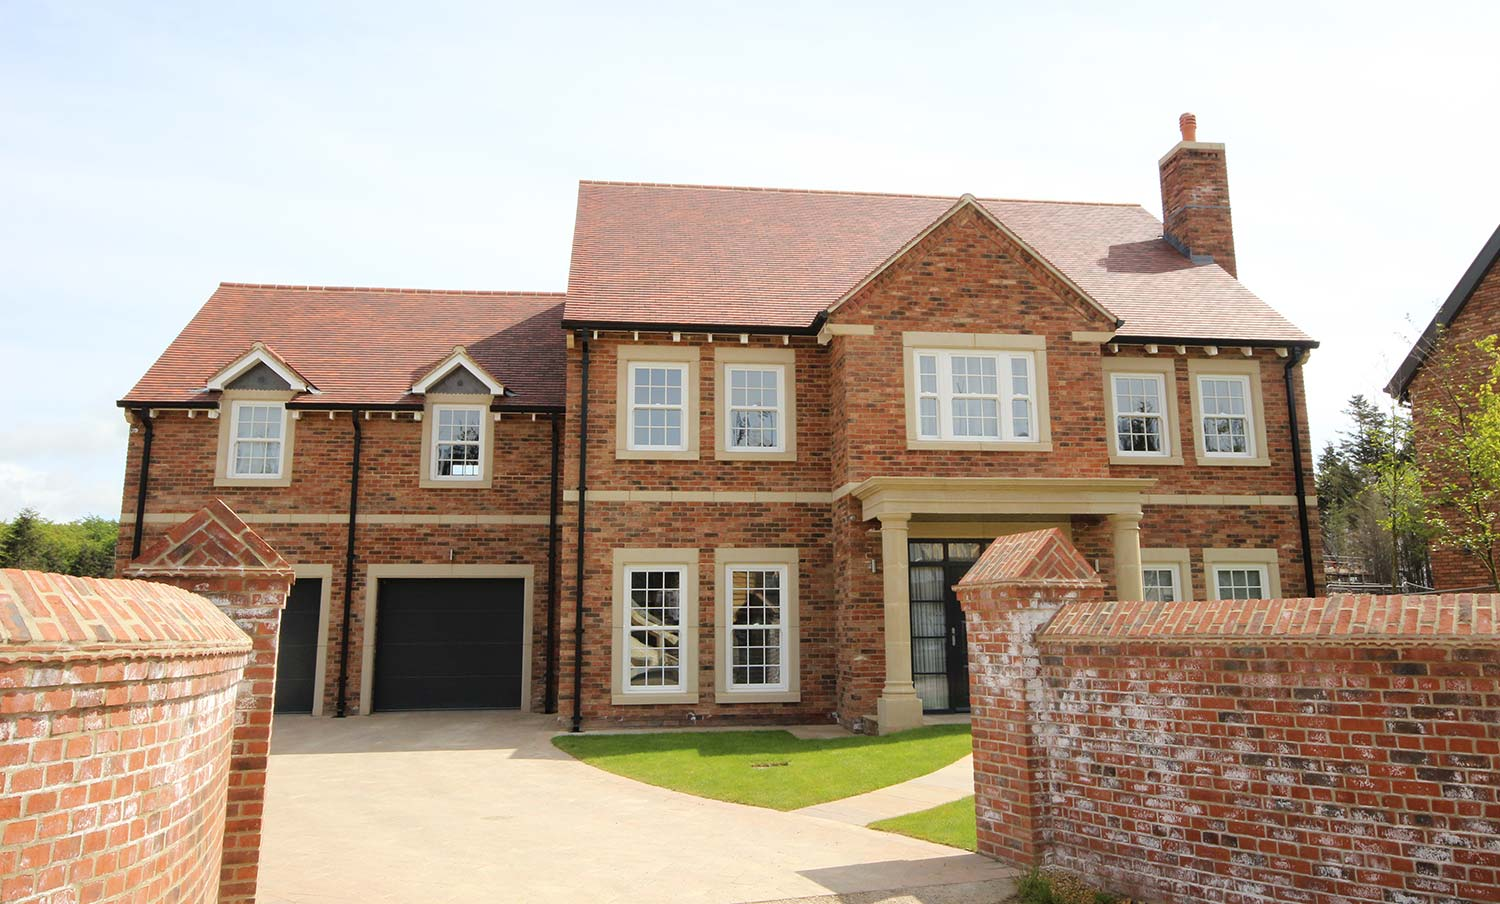 The Amberley, 5-bedroom bespoke country house